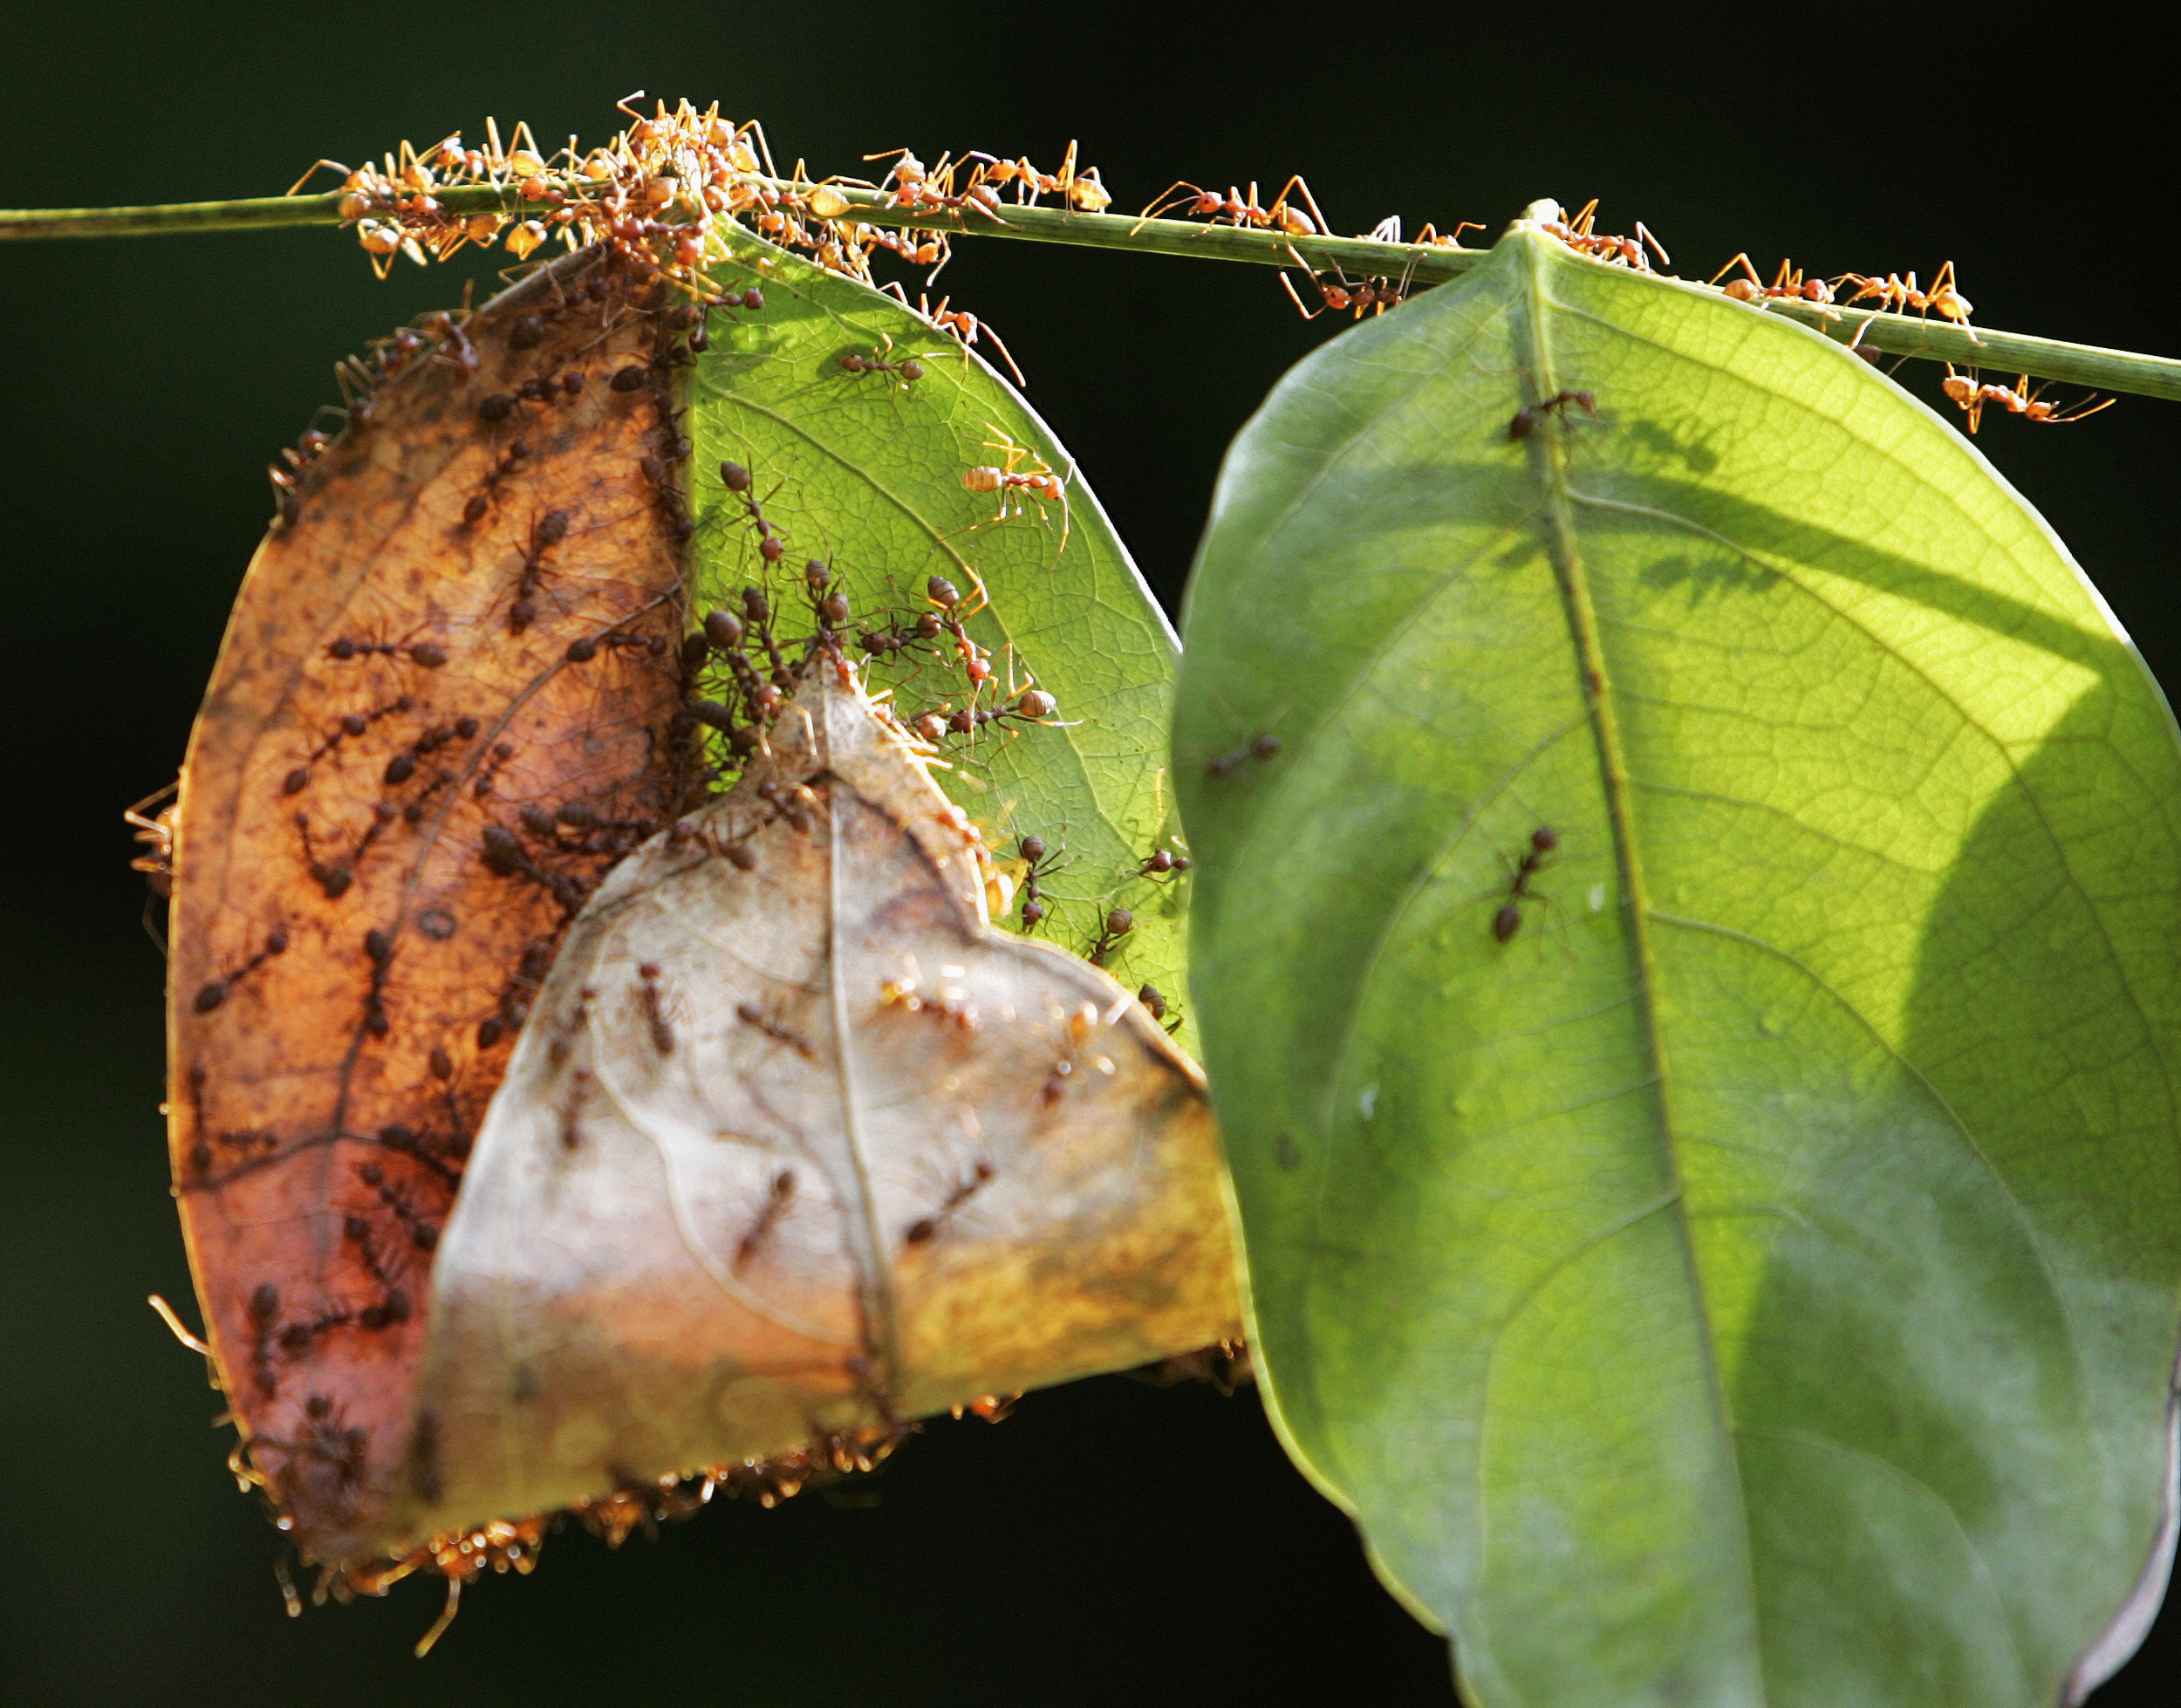 A colony of weaver ants build their nest from leaves in Kuala Lumpur January 31, 2009. Weaver ants get their name from their habit of binding fresh leaves with silk to form their nests. Their lifecycle spans a period of 8 to 10 weeks. REUTERS/Zainal Abd Halim (MALAYSIA) - GM1E51V0XHH01